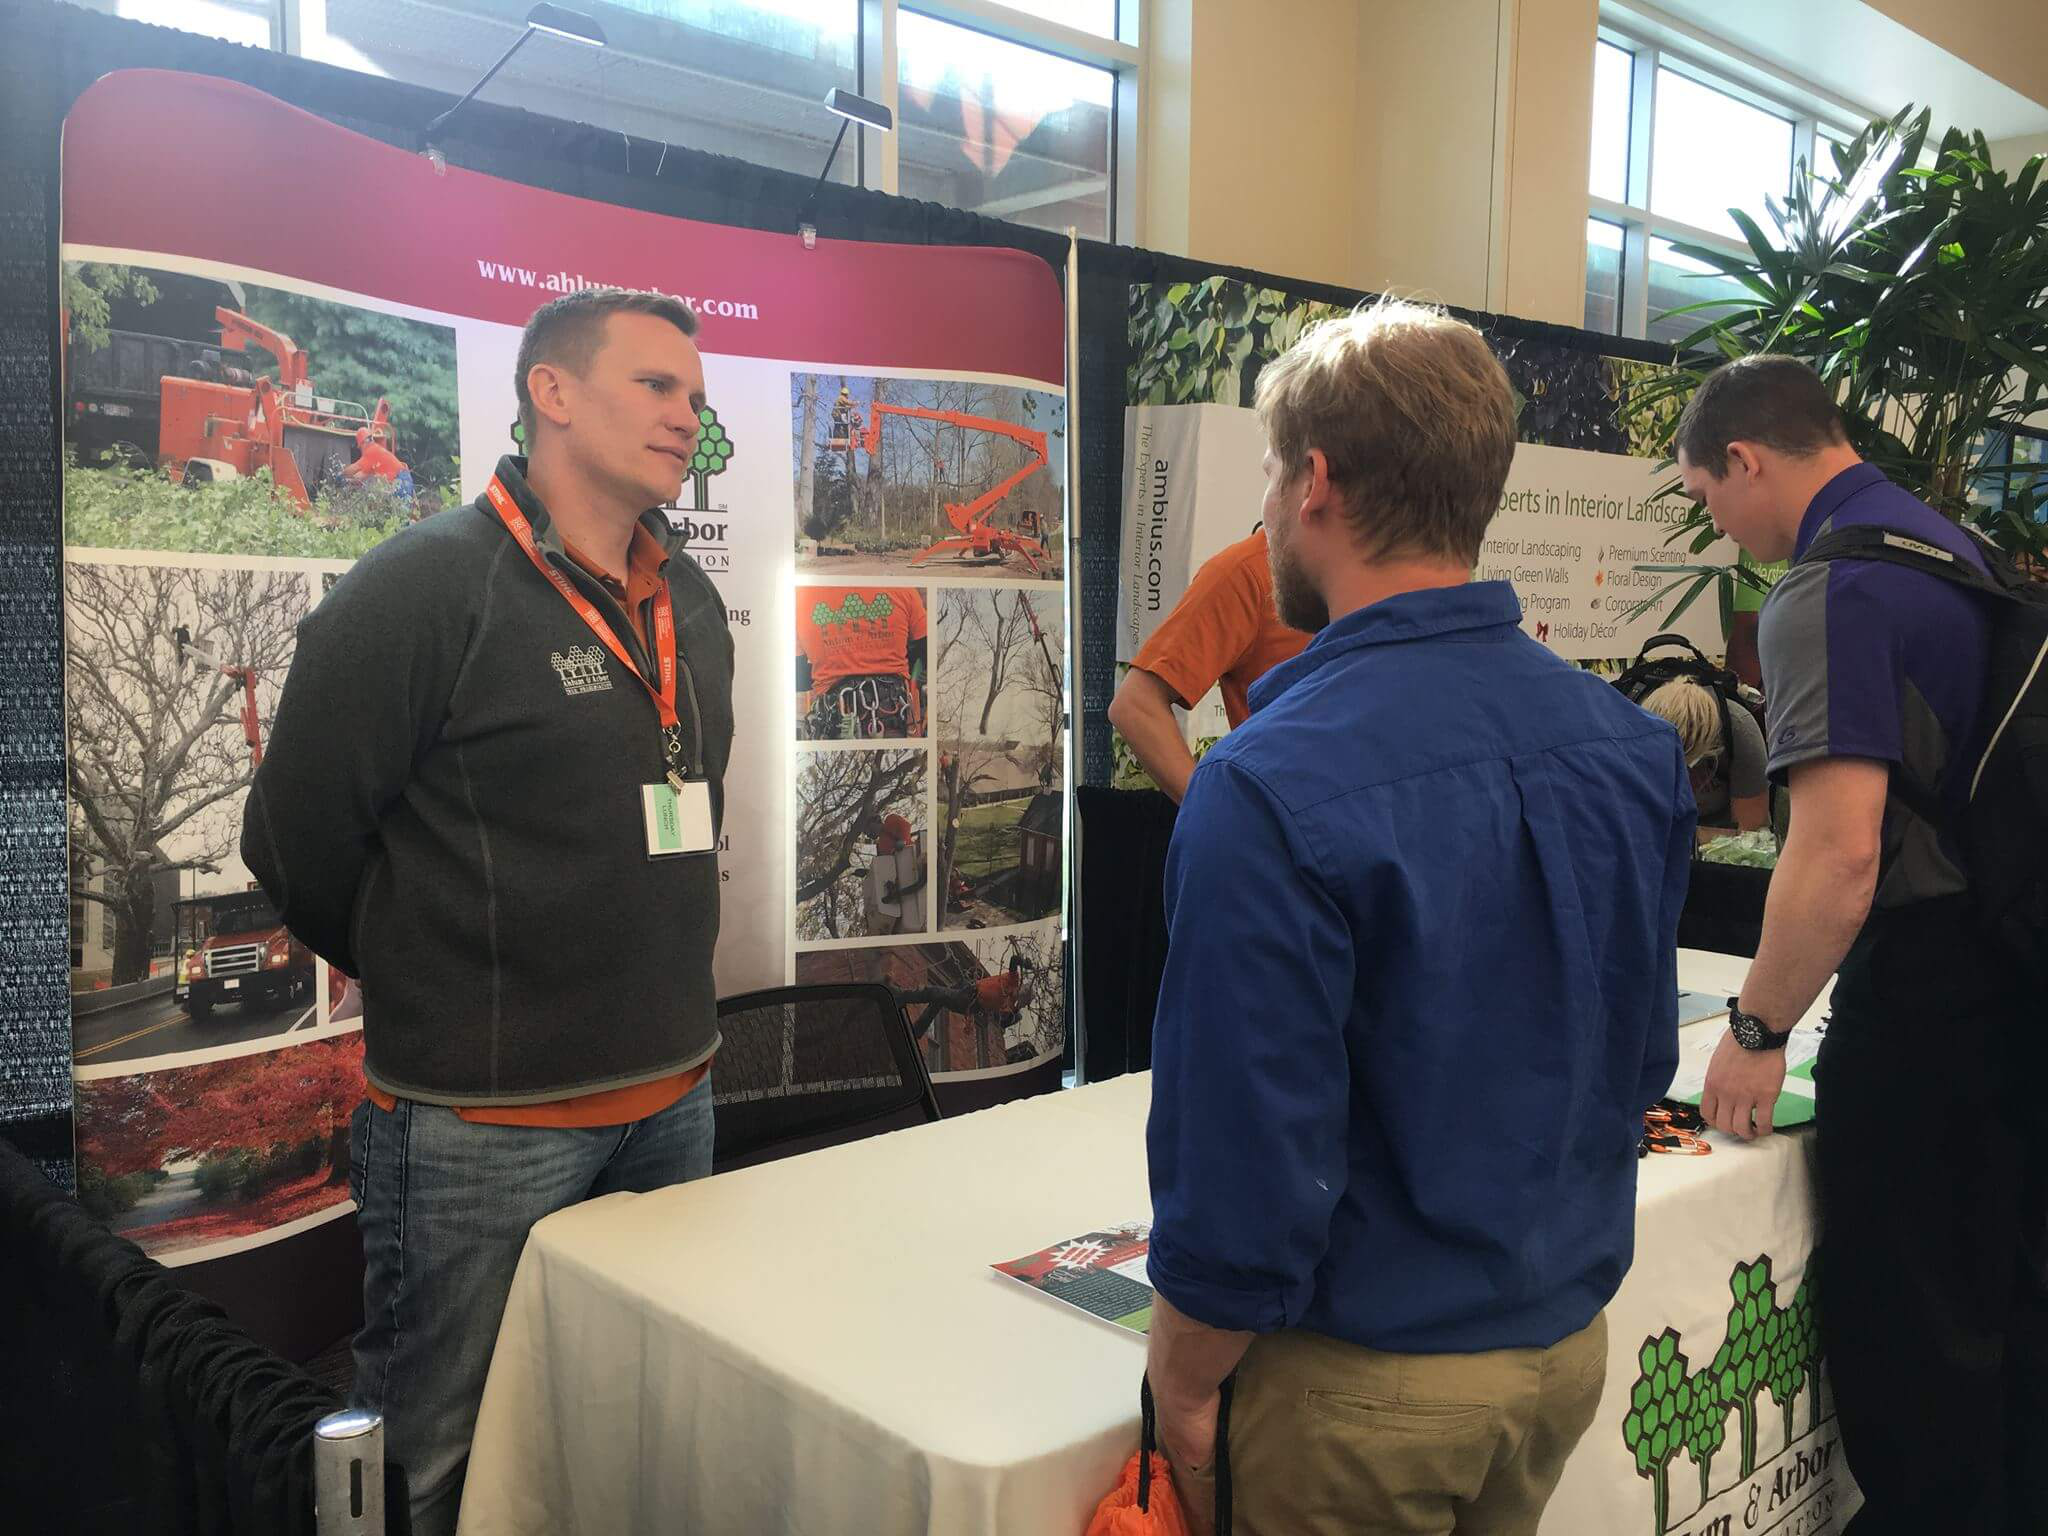 talking with landscaping companies and career fair